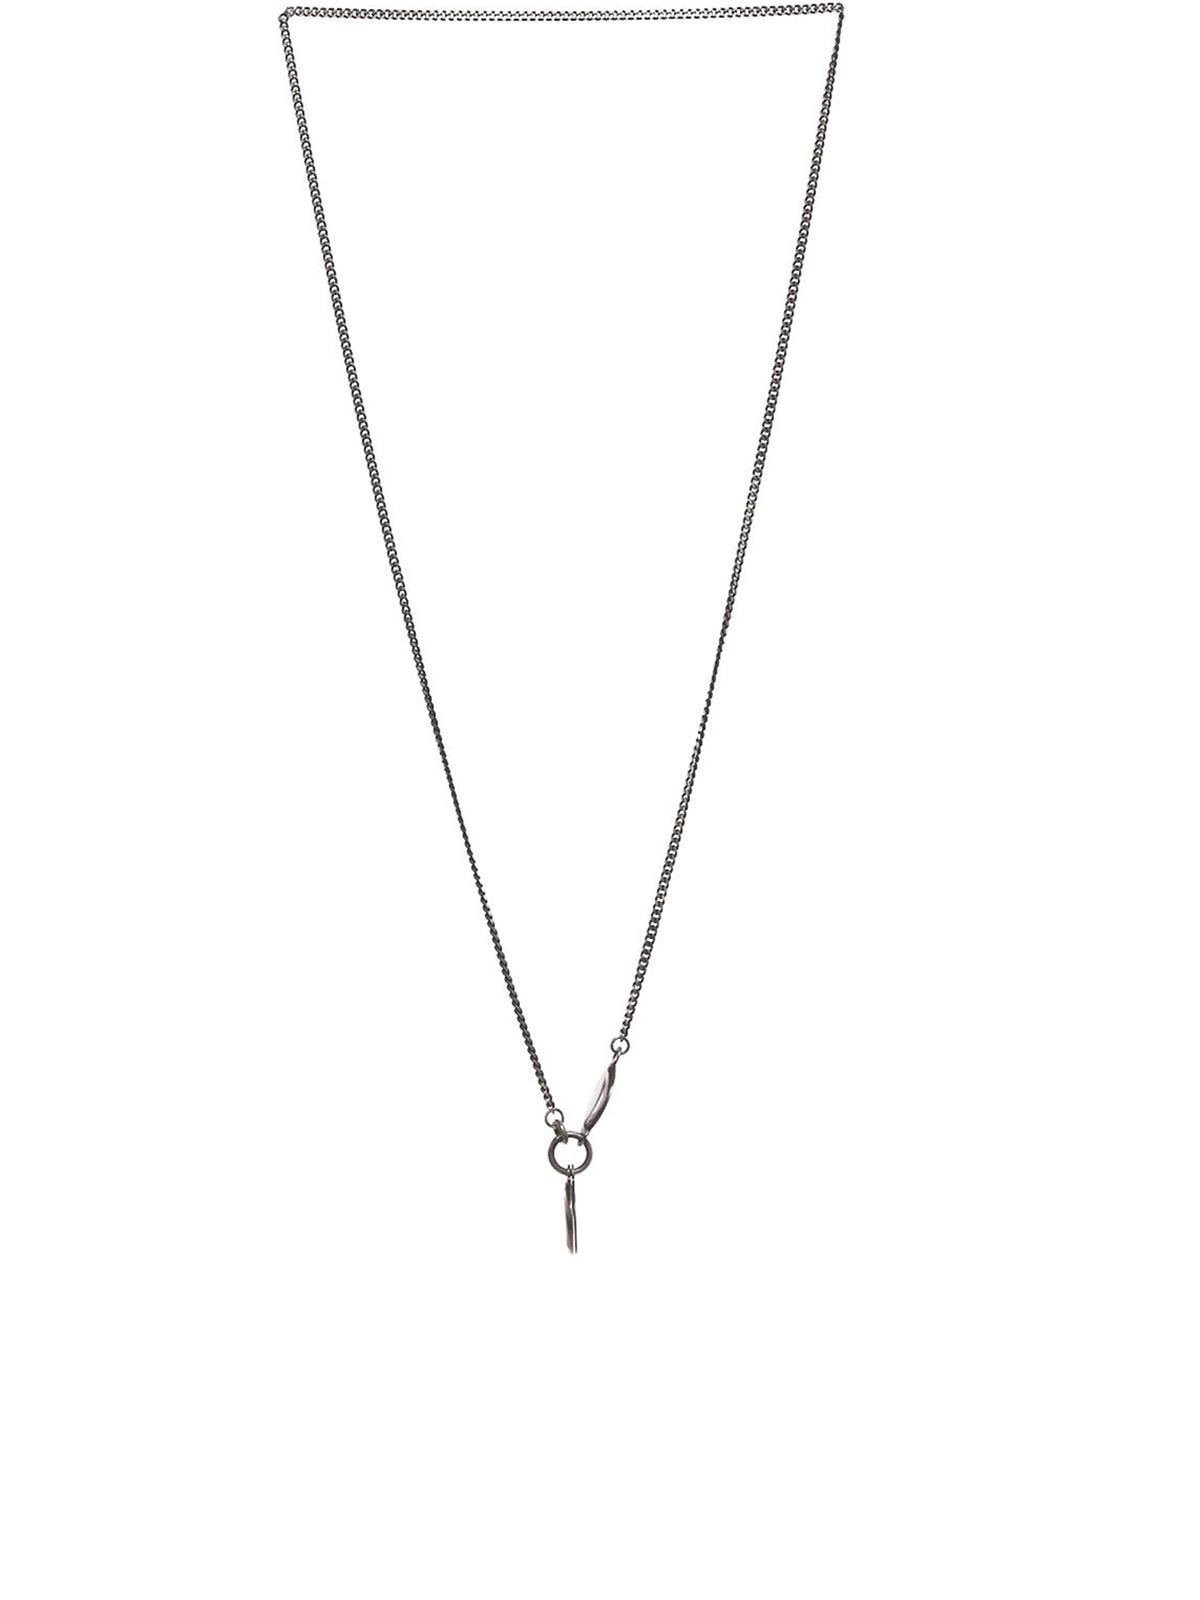 Hidden Plate Necklace (M3005-HIDDEN-PLATE-SILVER)